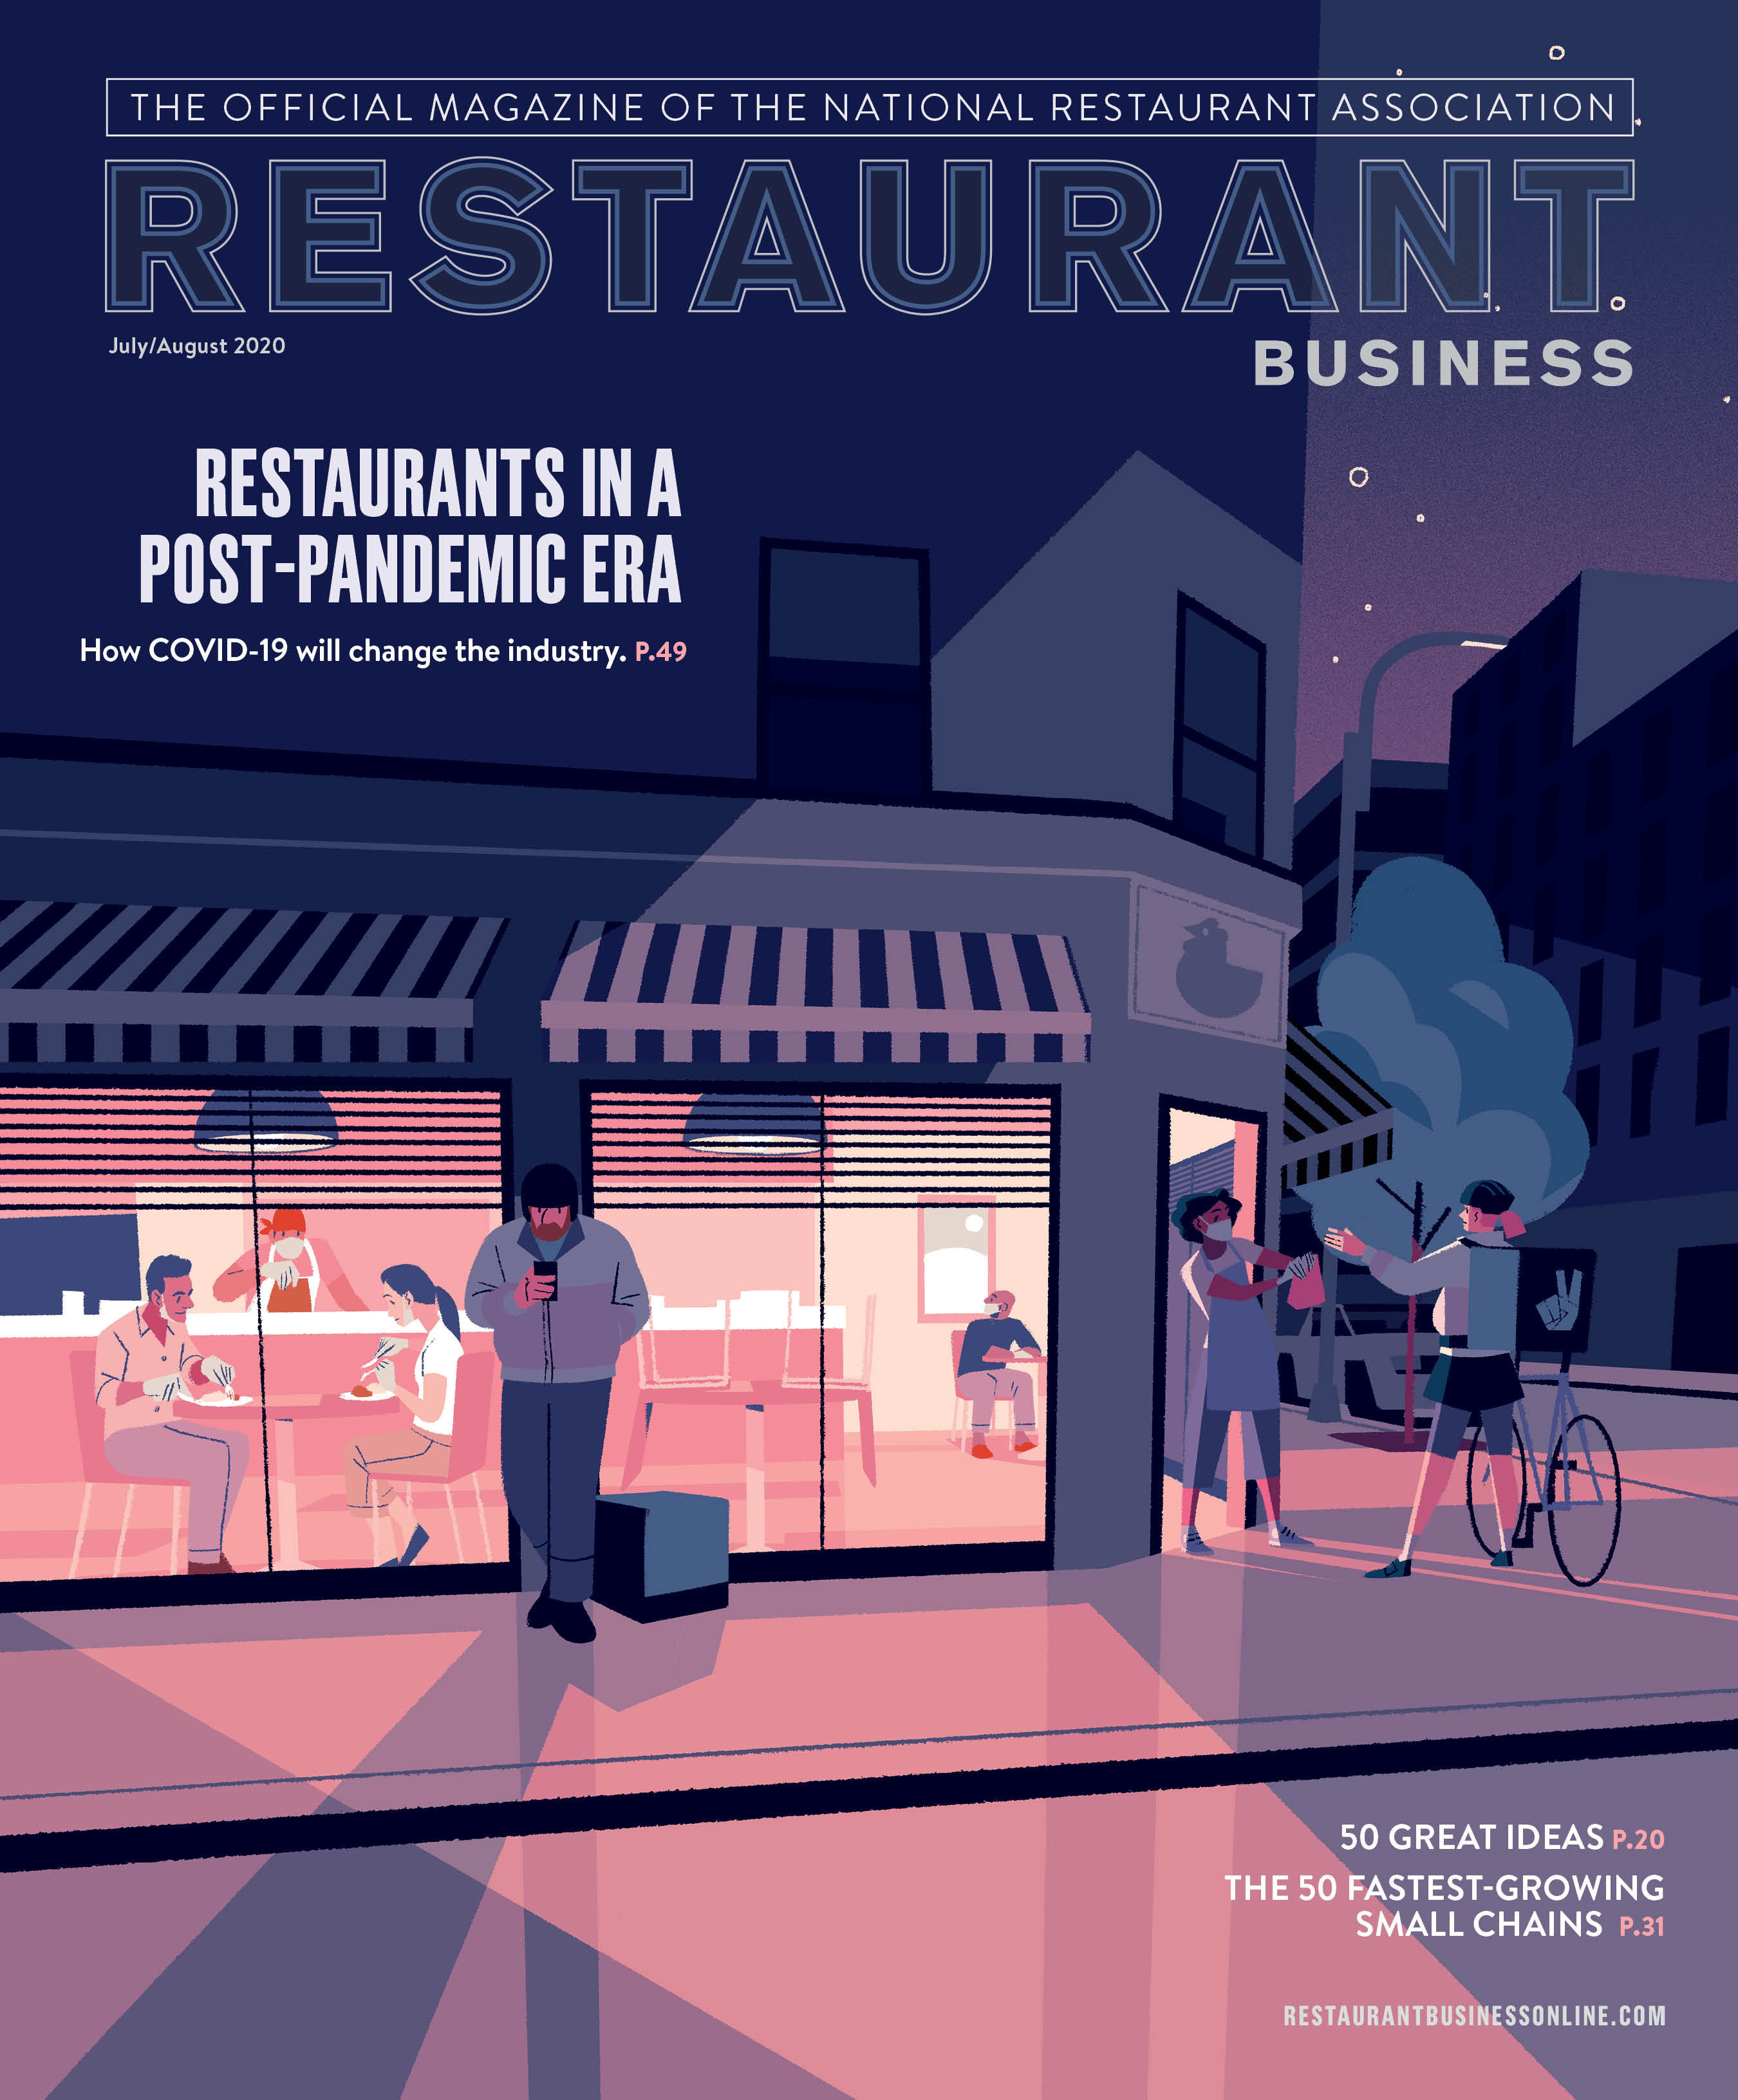 Restaurant Business Magazine July/August Issue